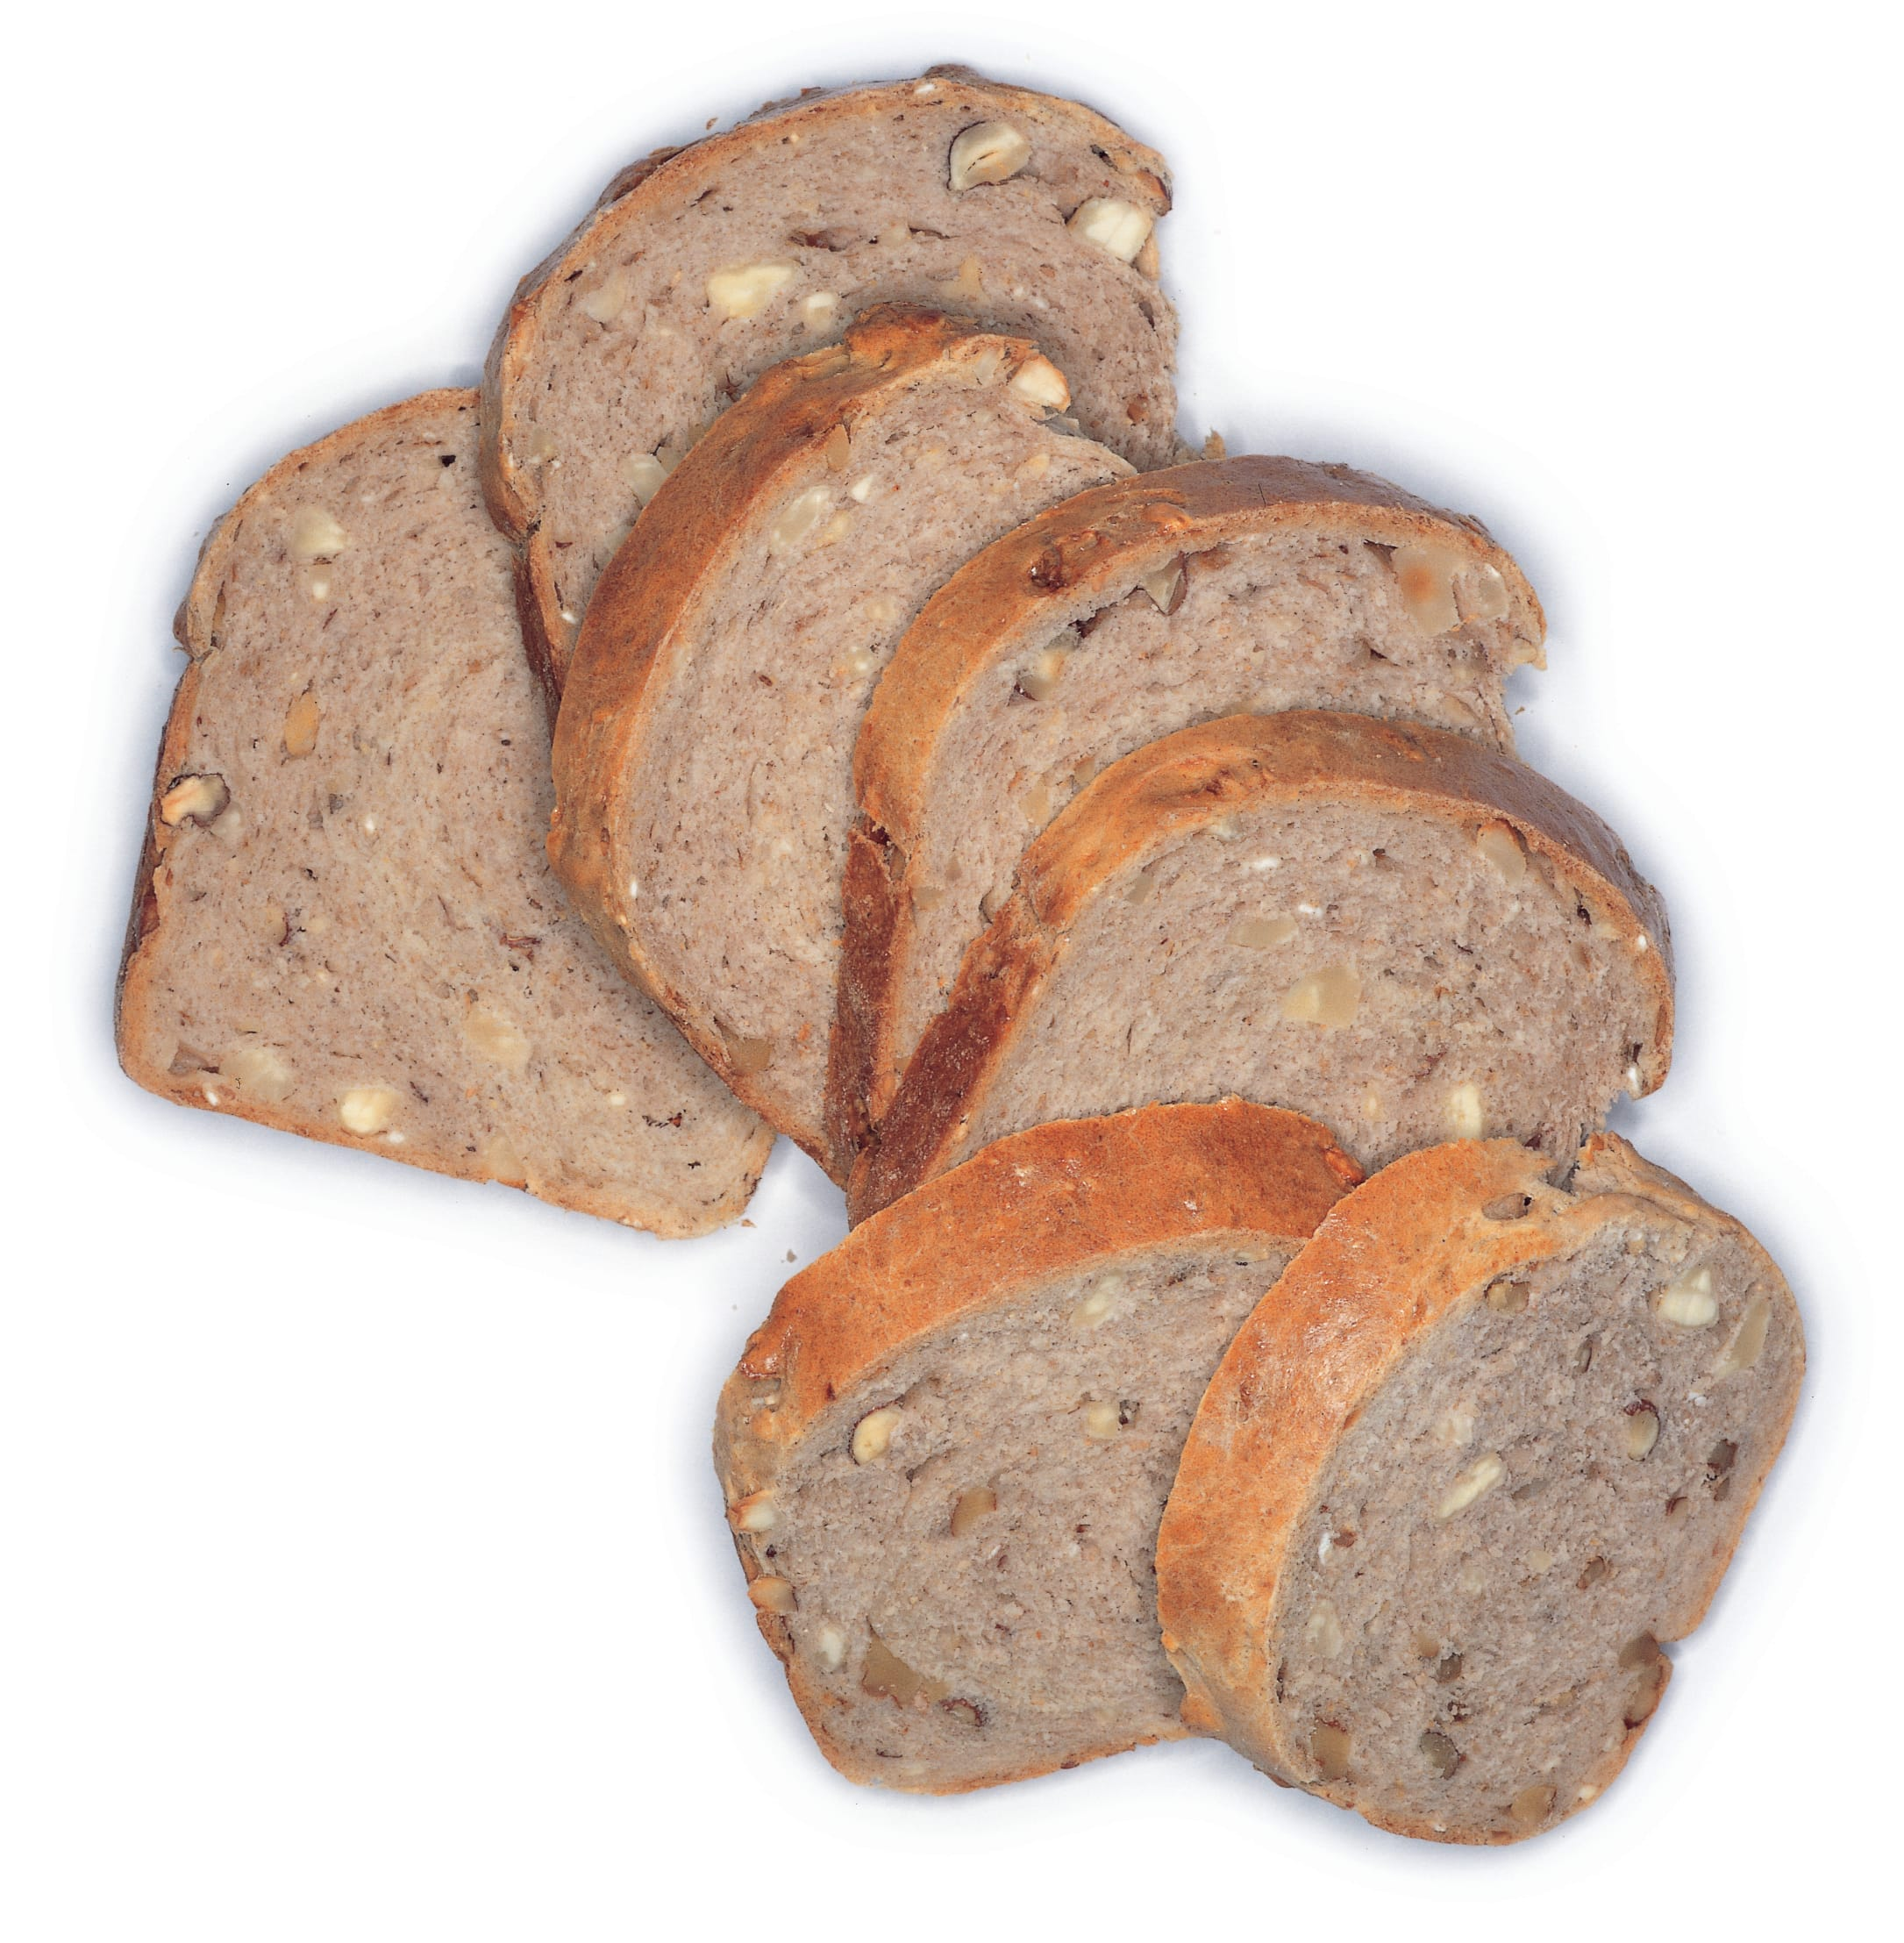 Buttermilch-Nuss-Brot